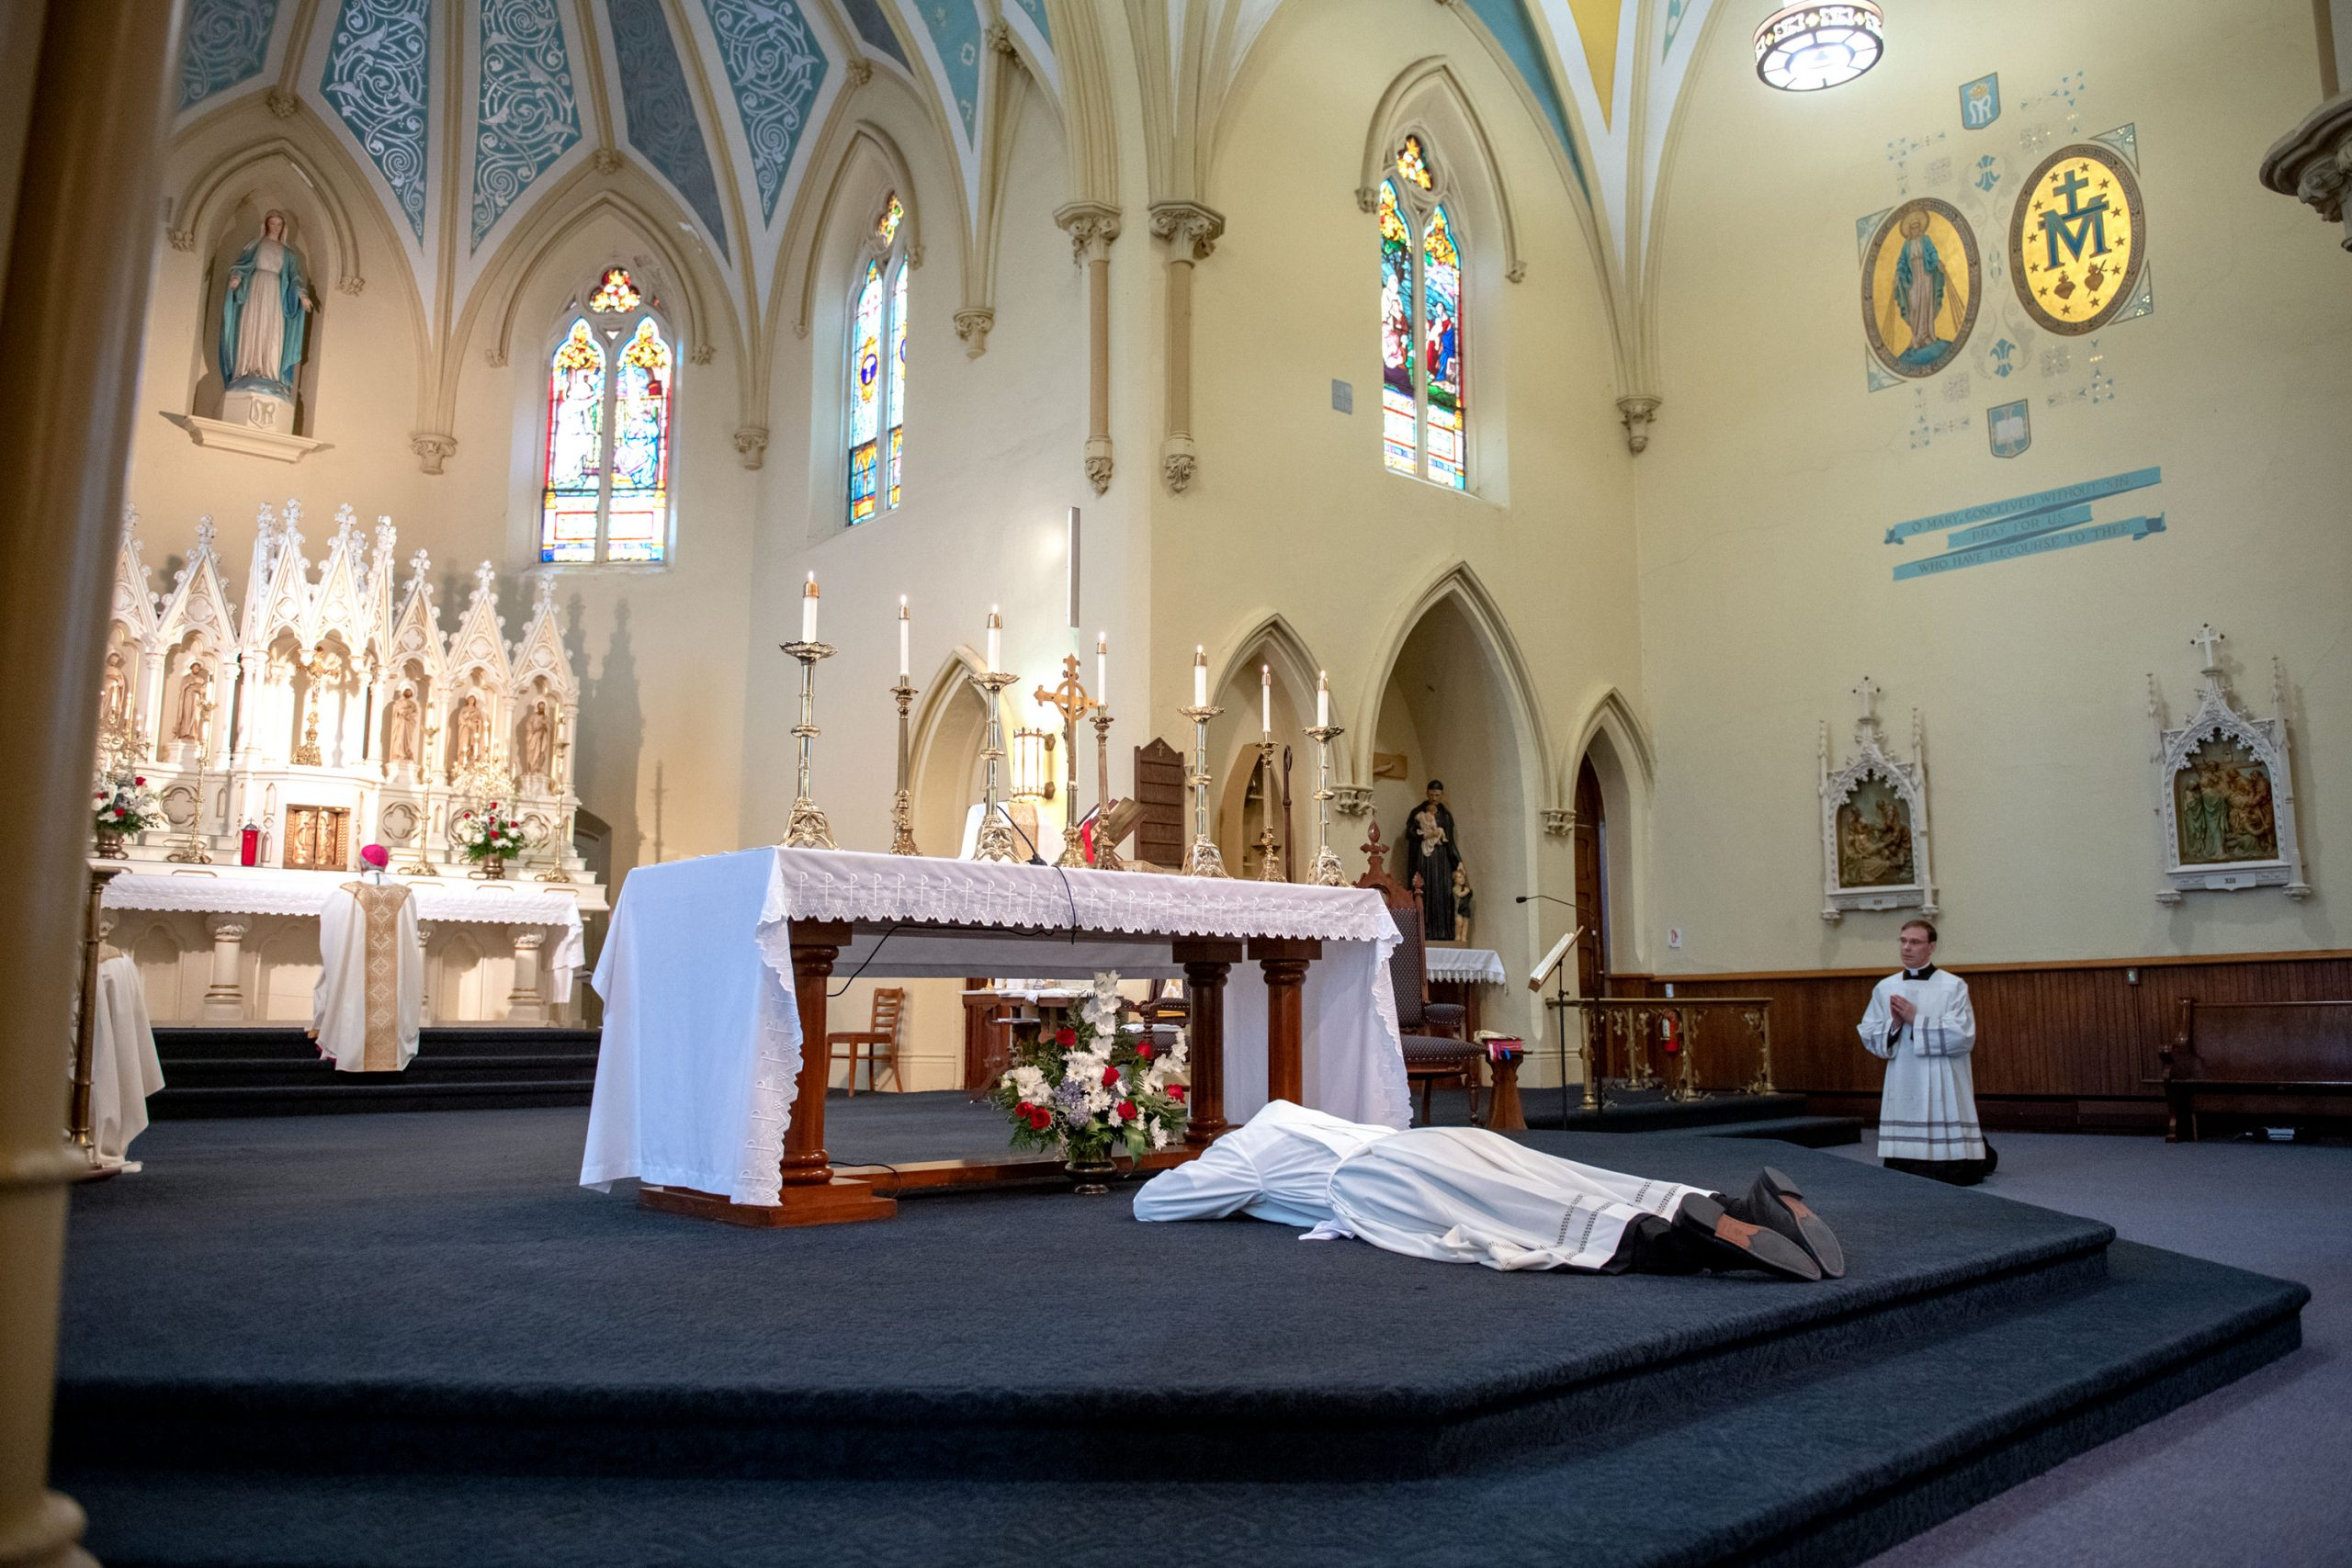 Father Martuscello prostrates at the altar during Litany of Saints.